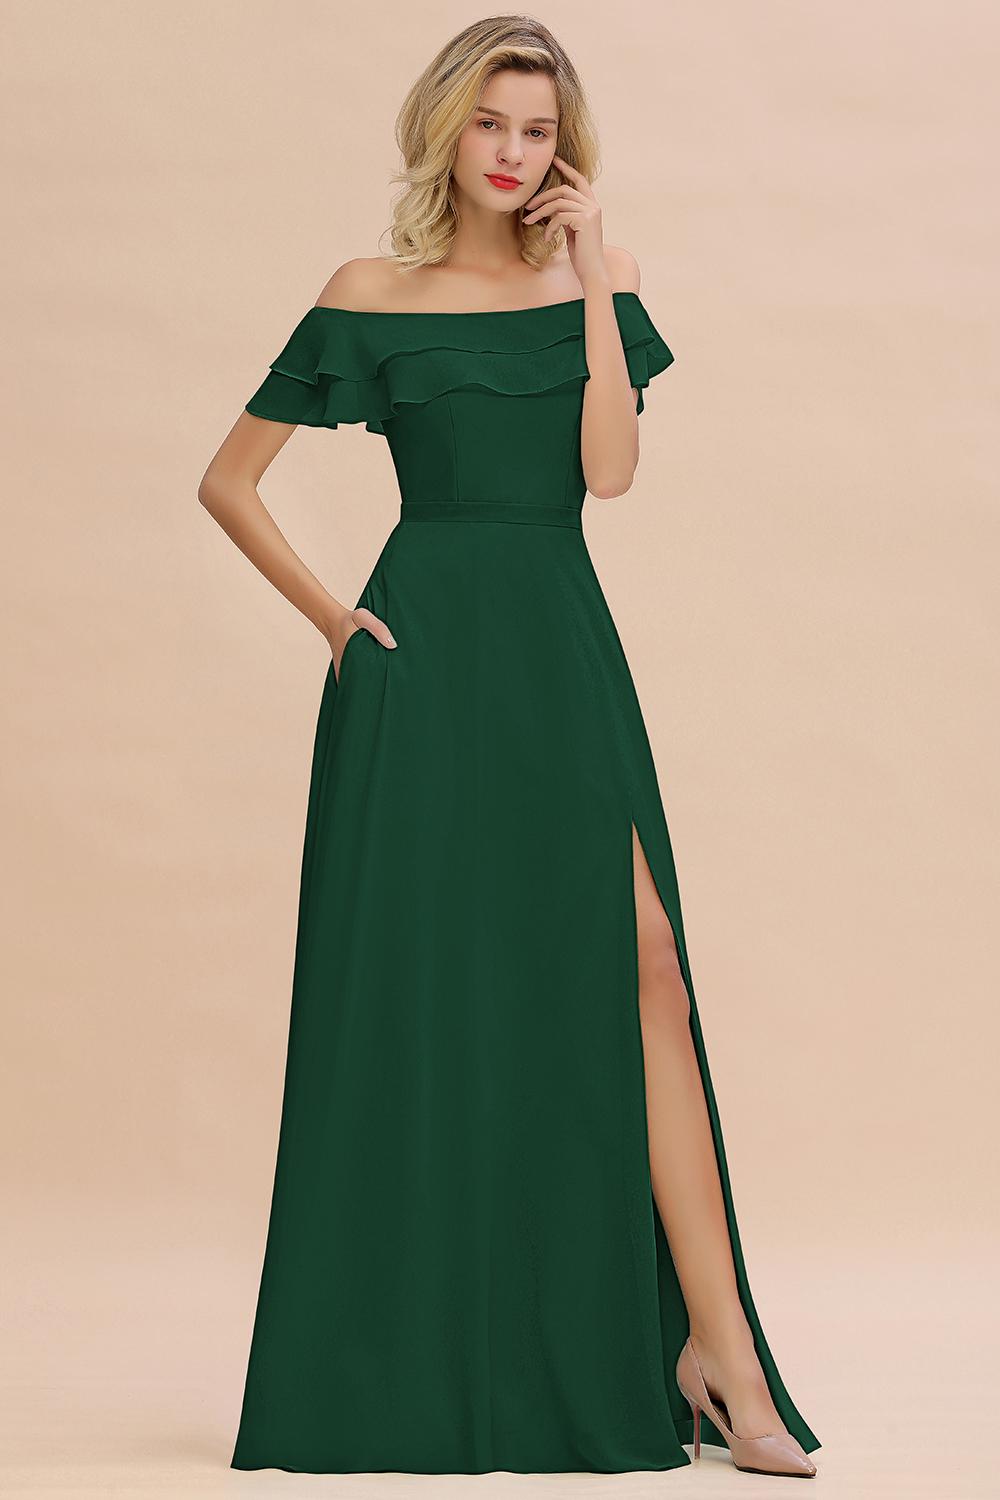 BMbridal Exquisite Off-the-shoulder Slit Mint Green Bridesmaid Dress With Pockets